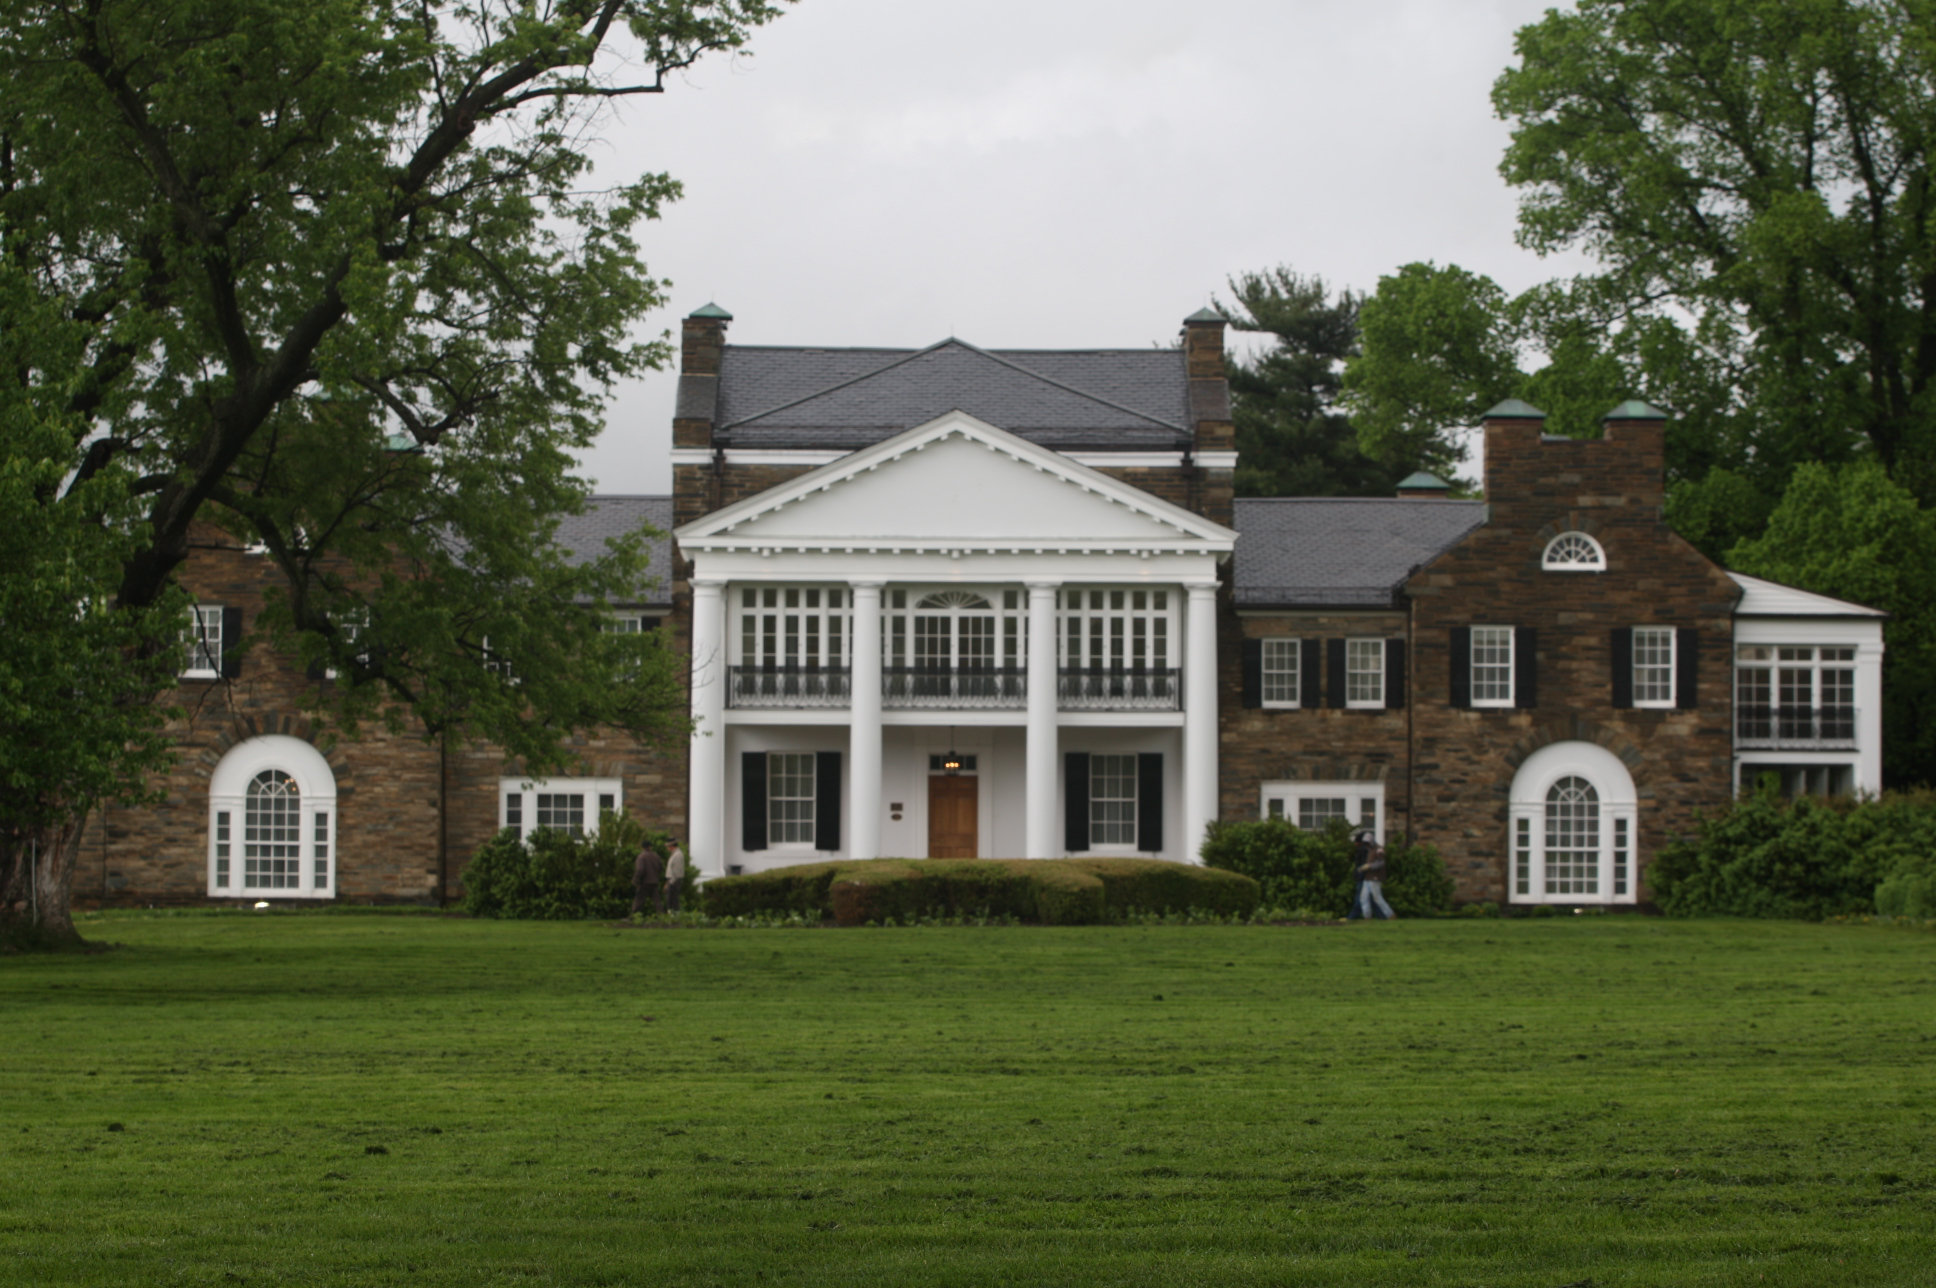 Glenview Mansion exterior